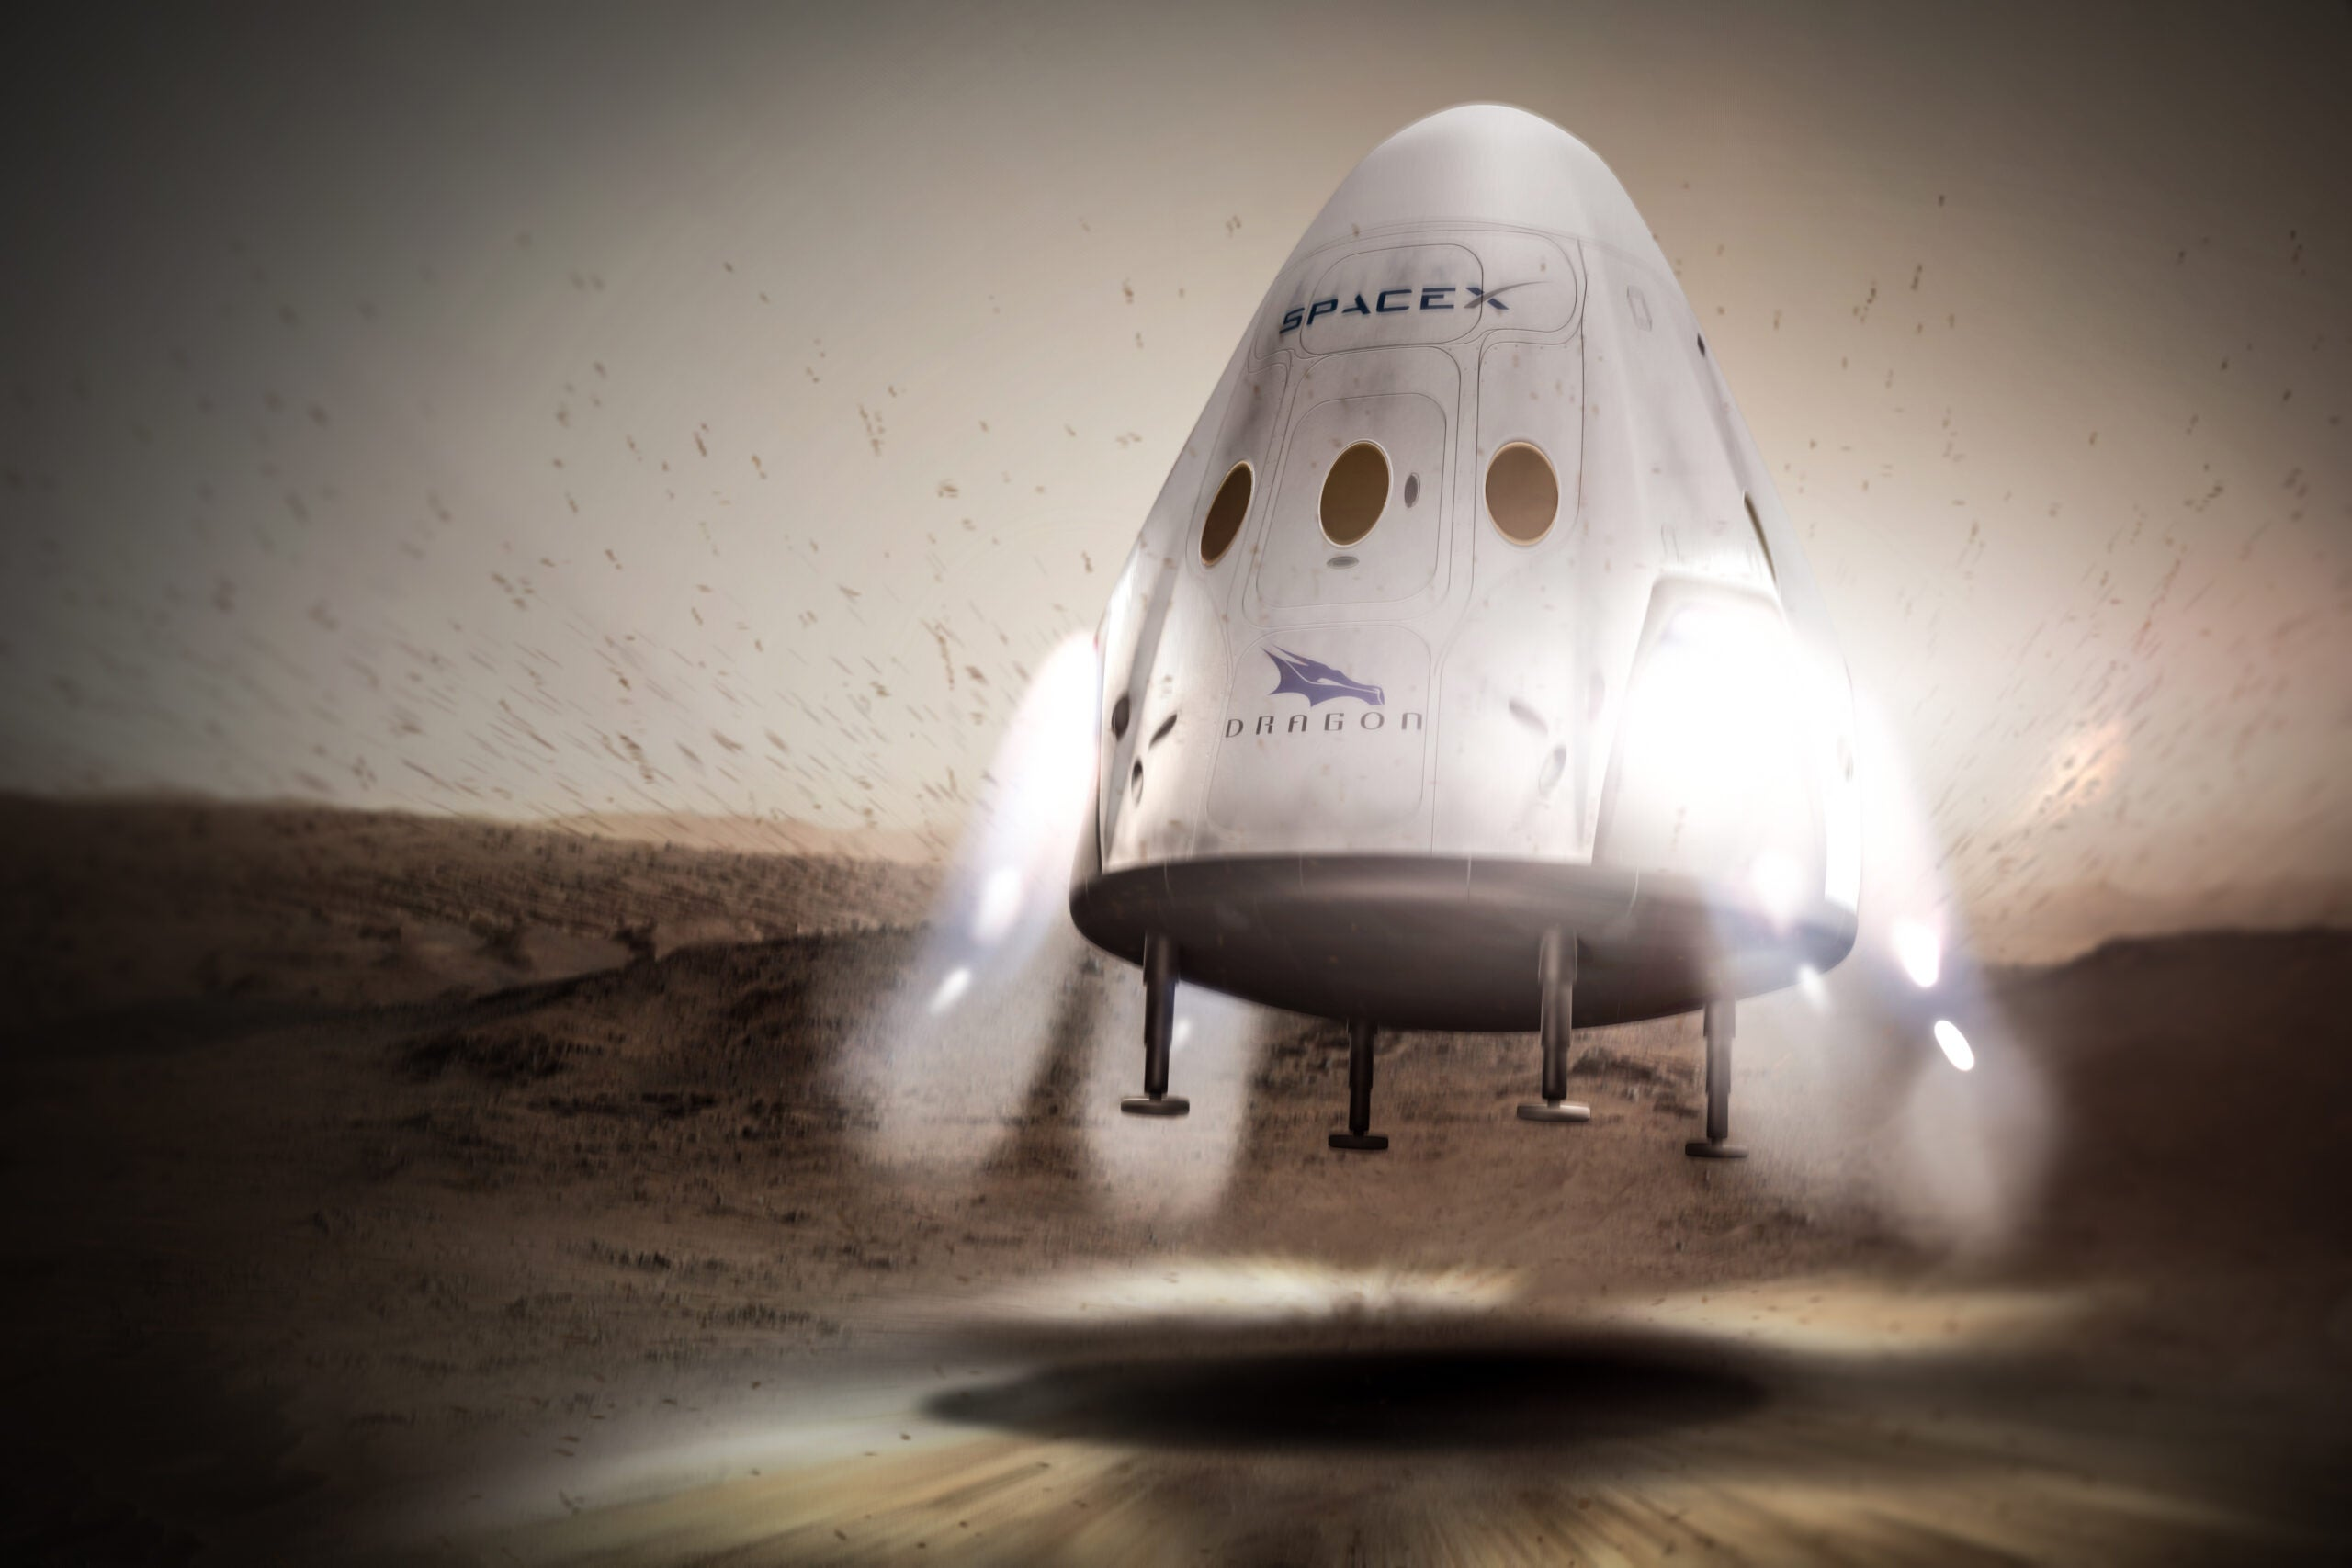 SpaceX is changing up its plans for landing a spaceship on Mars